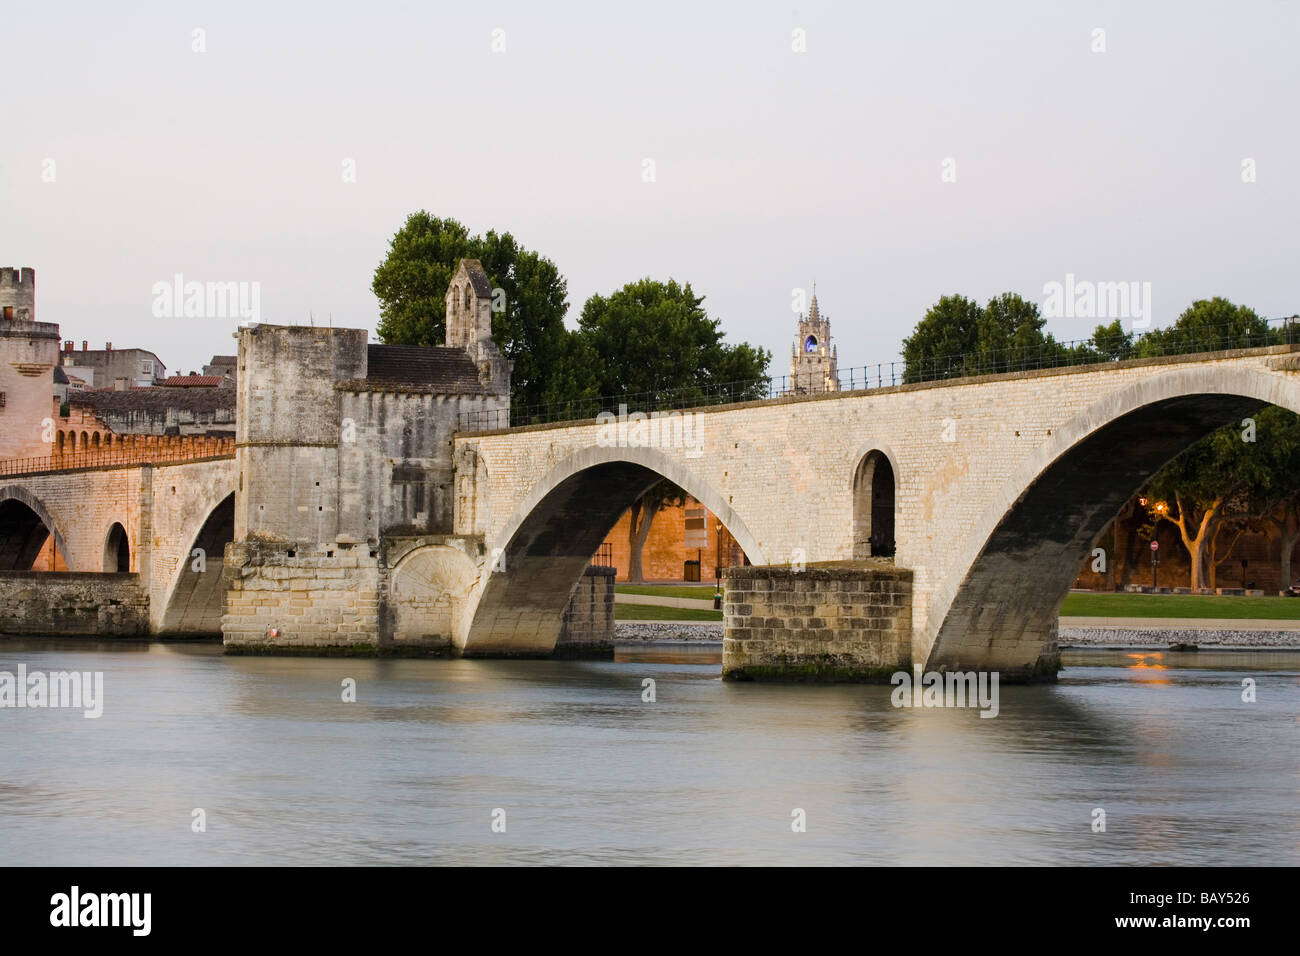 View at the bridge St. Benezet, Avignon, Vaucluse, Provence, France - Stock Image